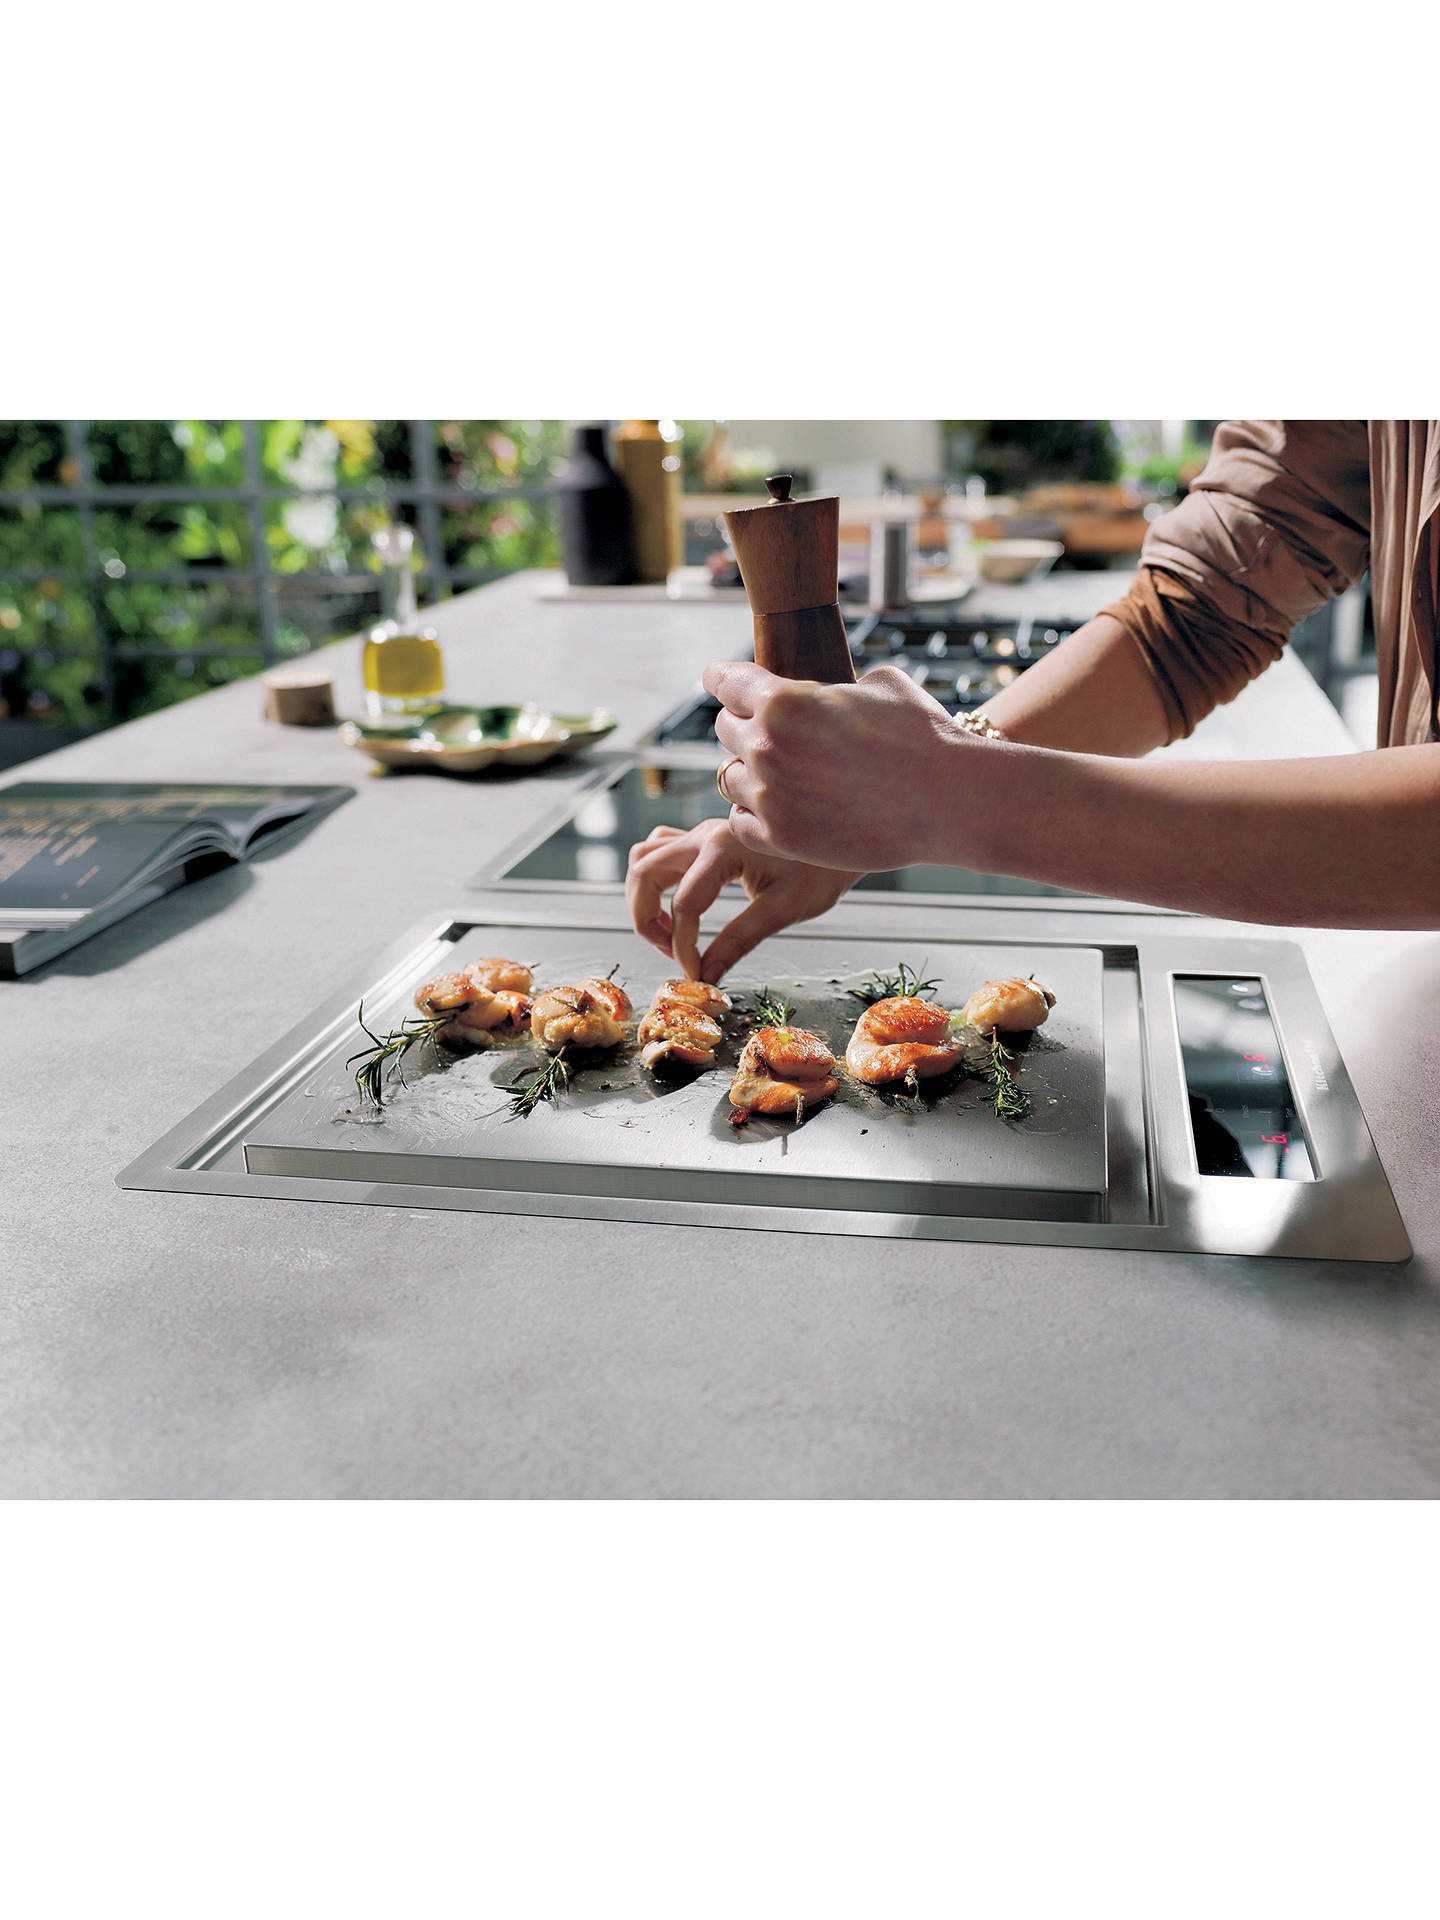 Buy KitchenAid KHTD238510 Induction Teppan Yaki Cooktop, Stainless Steel Online at johnlewis.com